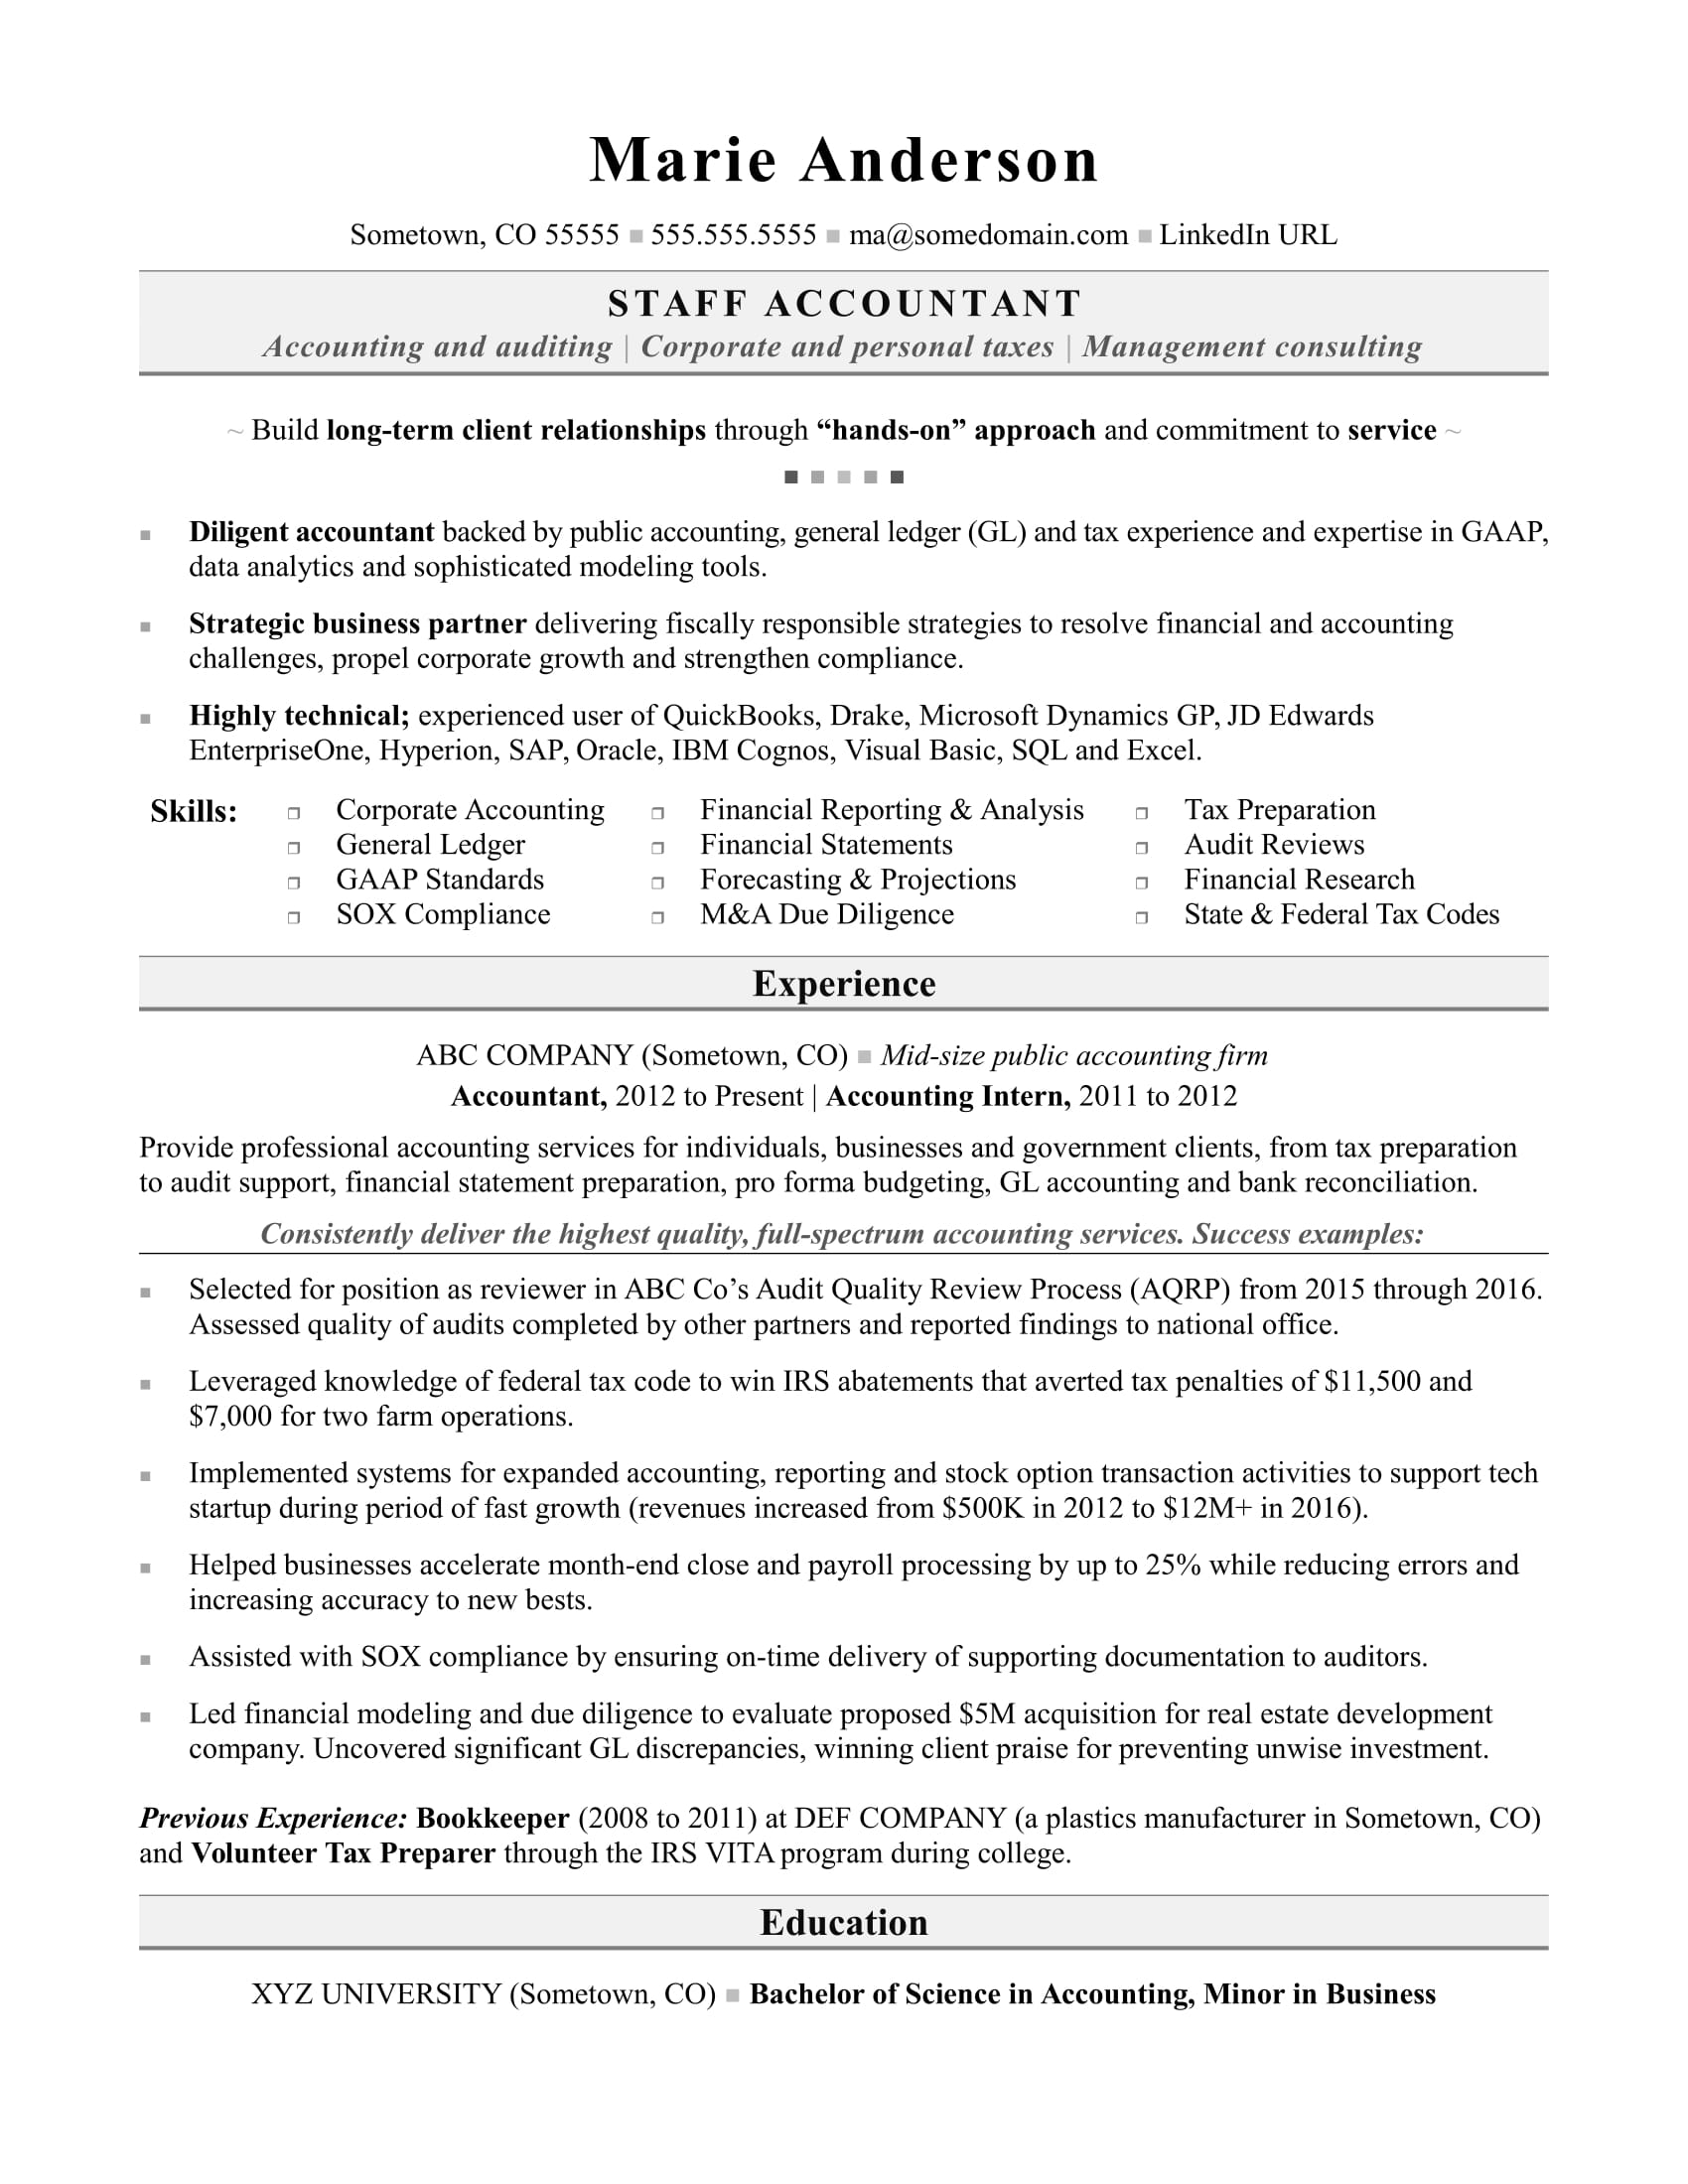 accounting resume tips - Boat.jeremyeaton.co